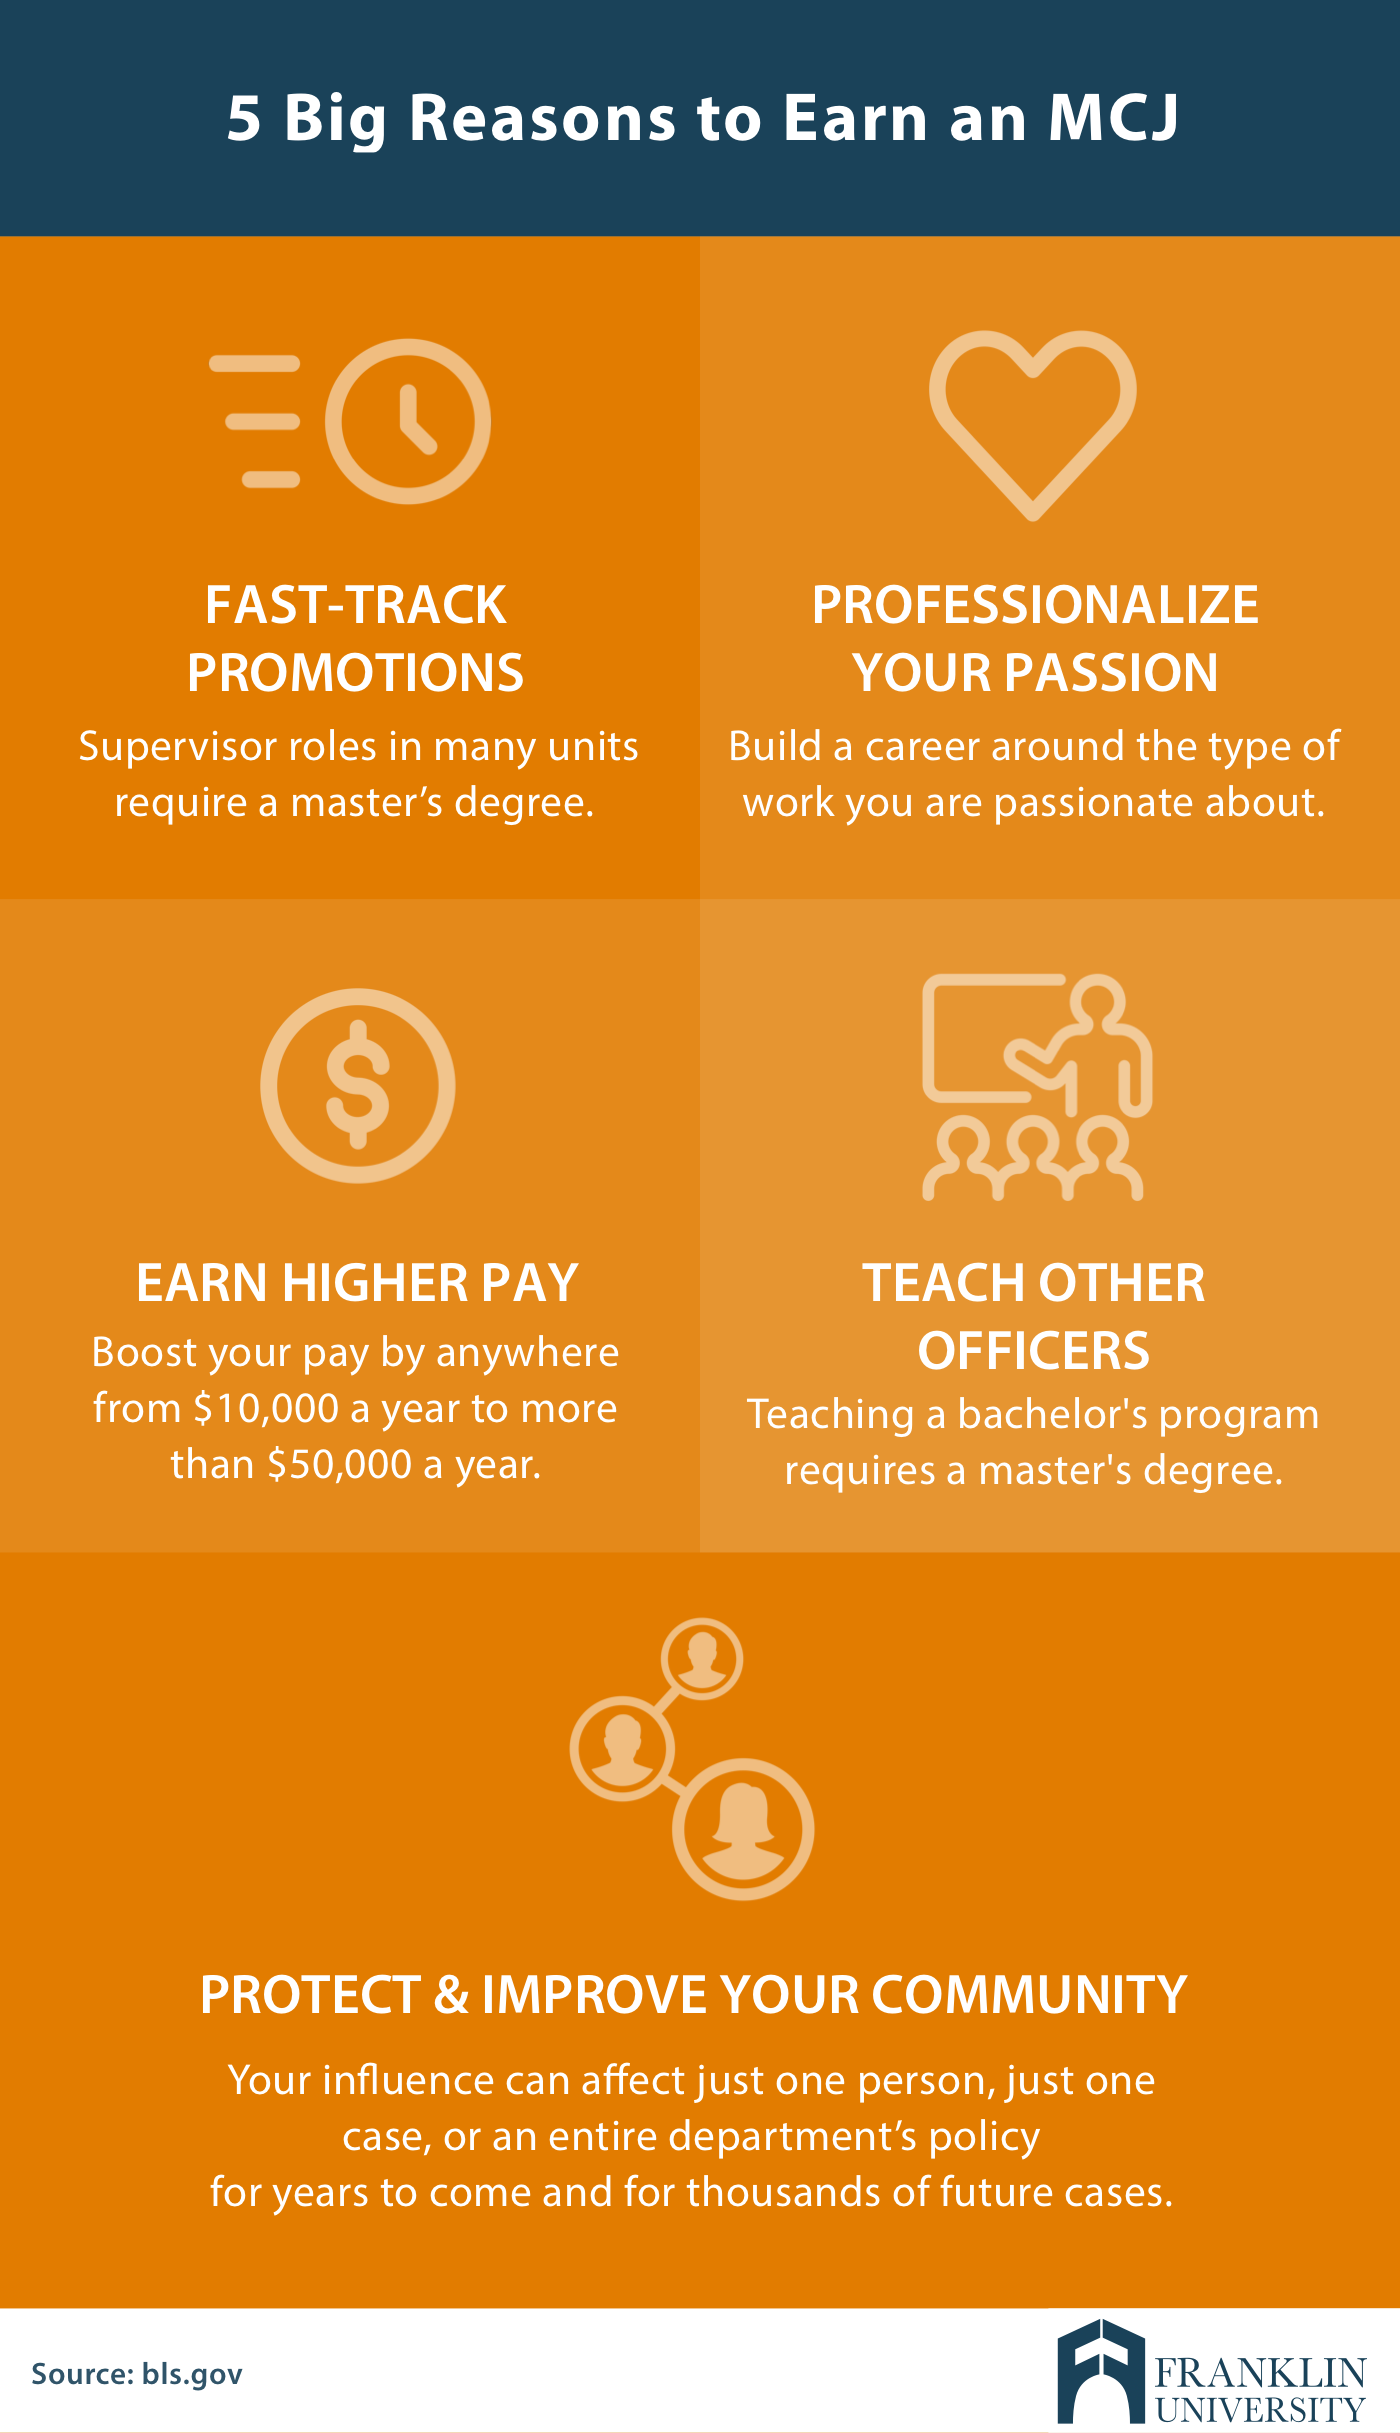 graphic describes 5 big reasons to earn an MCJ